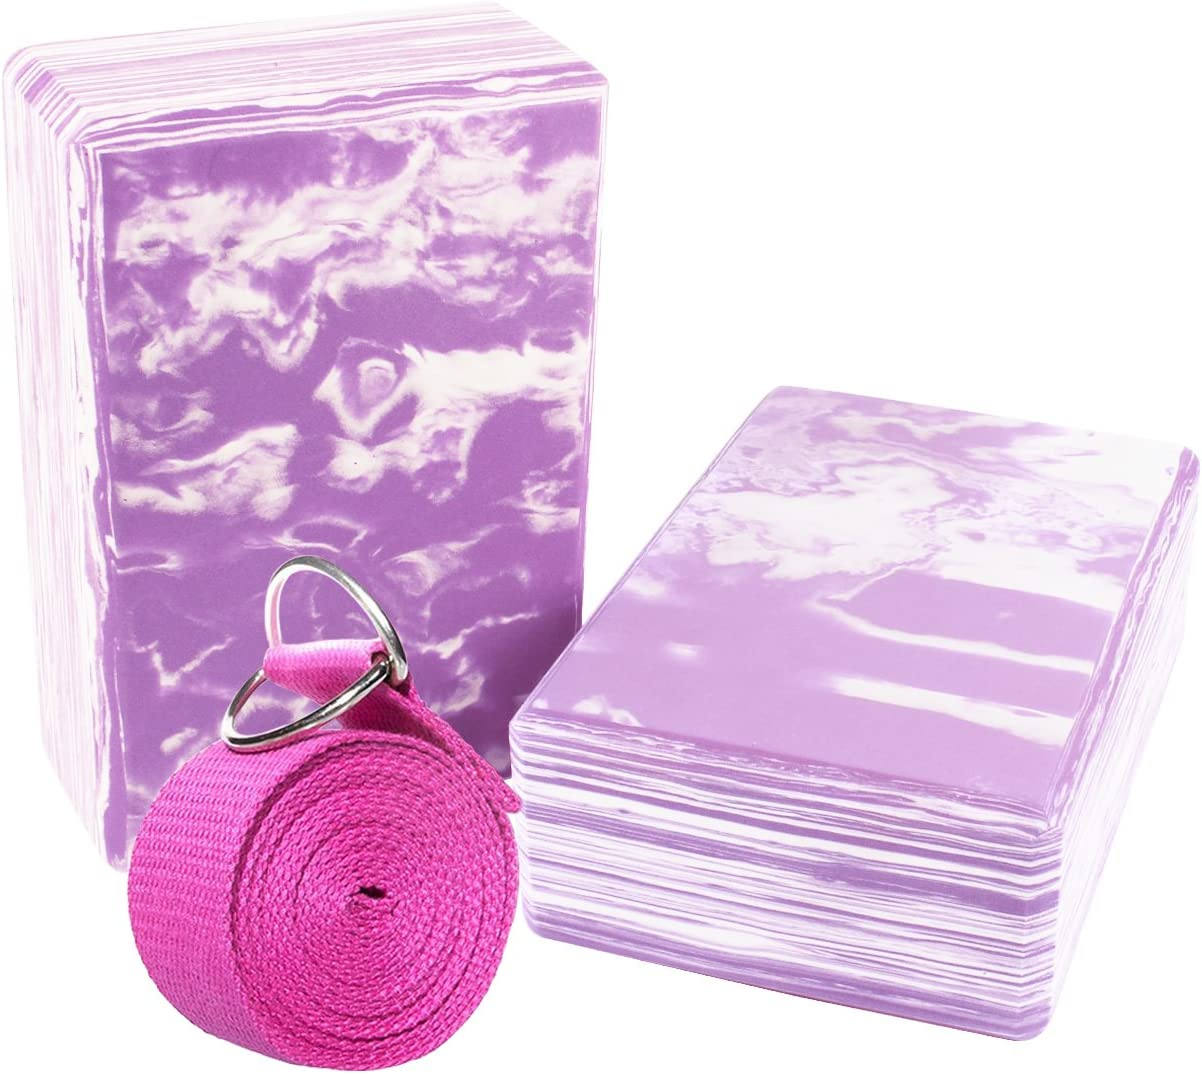 Yoga Block and Yoga Strap with Metal D-Ring Odor-Resistant and Moisture-Proof High Density EVA Foam Yoga Block to Support and Deepen Poses 2 Pack per Set Yoga Foam Brick